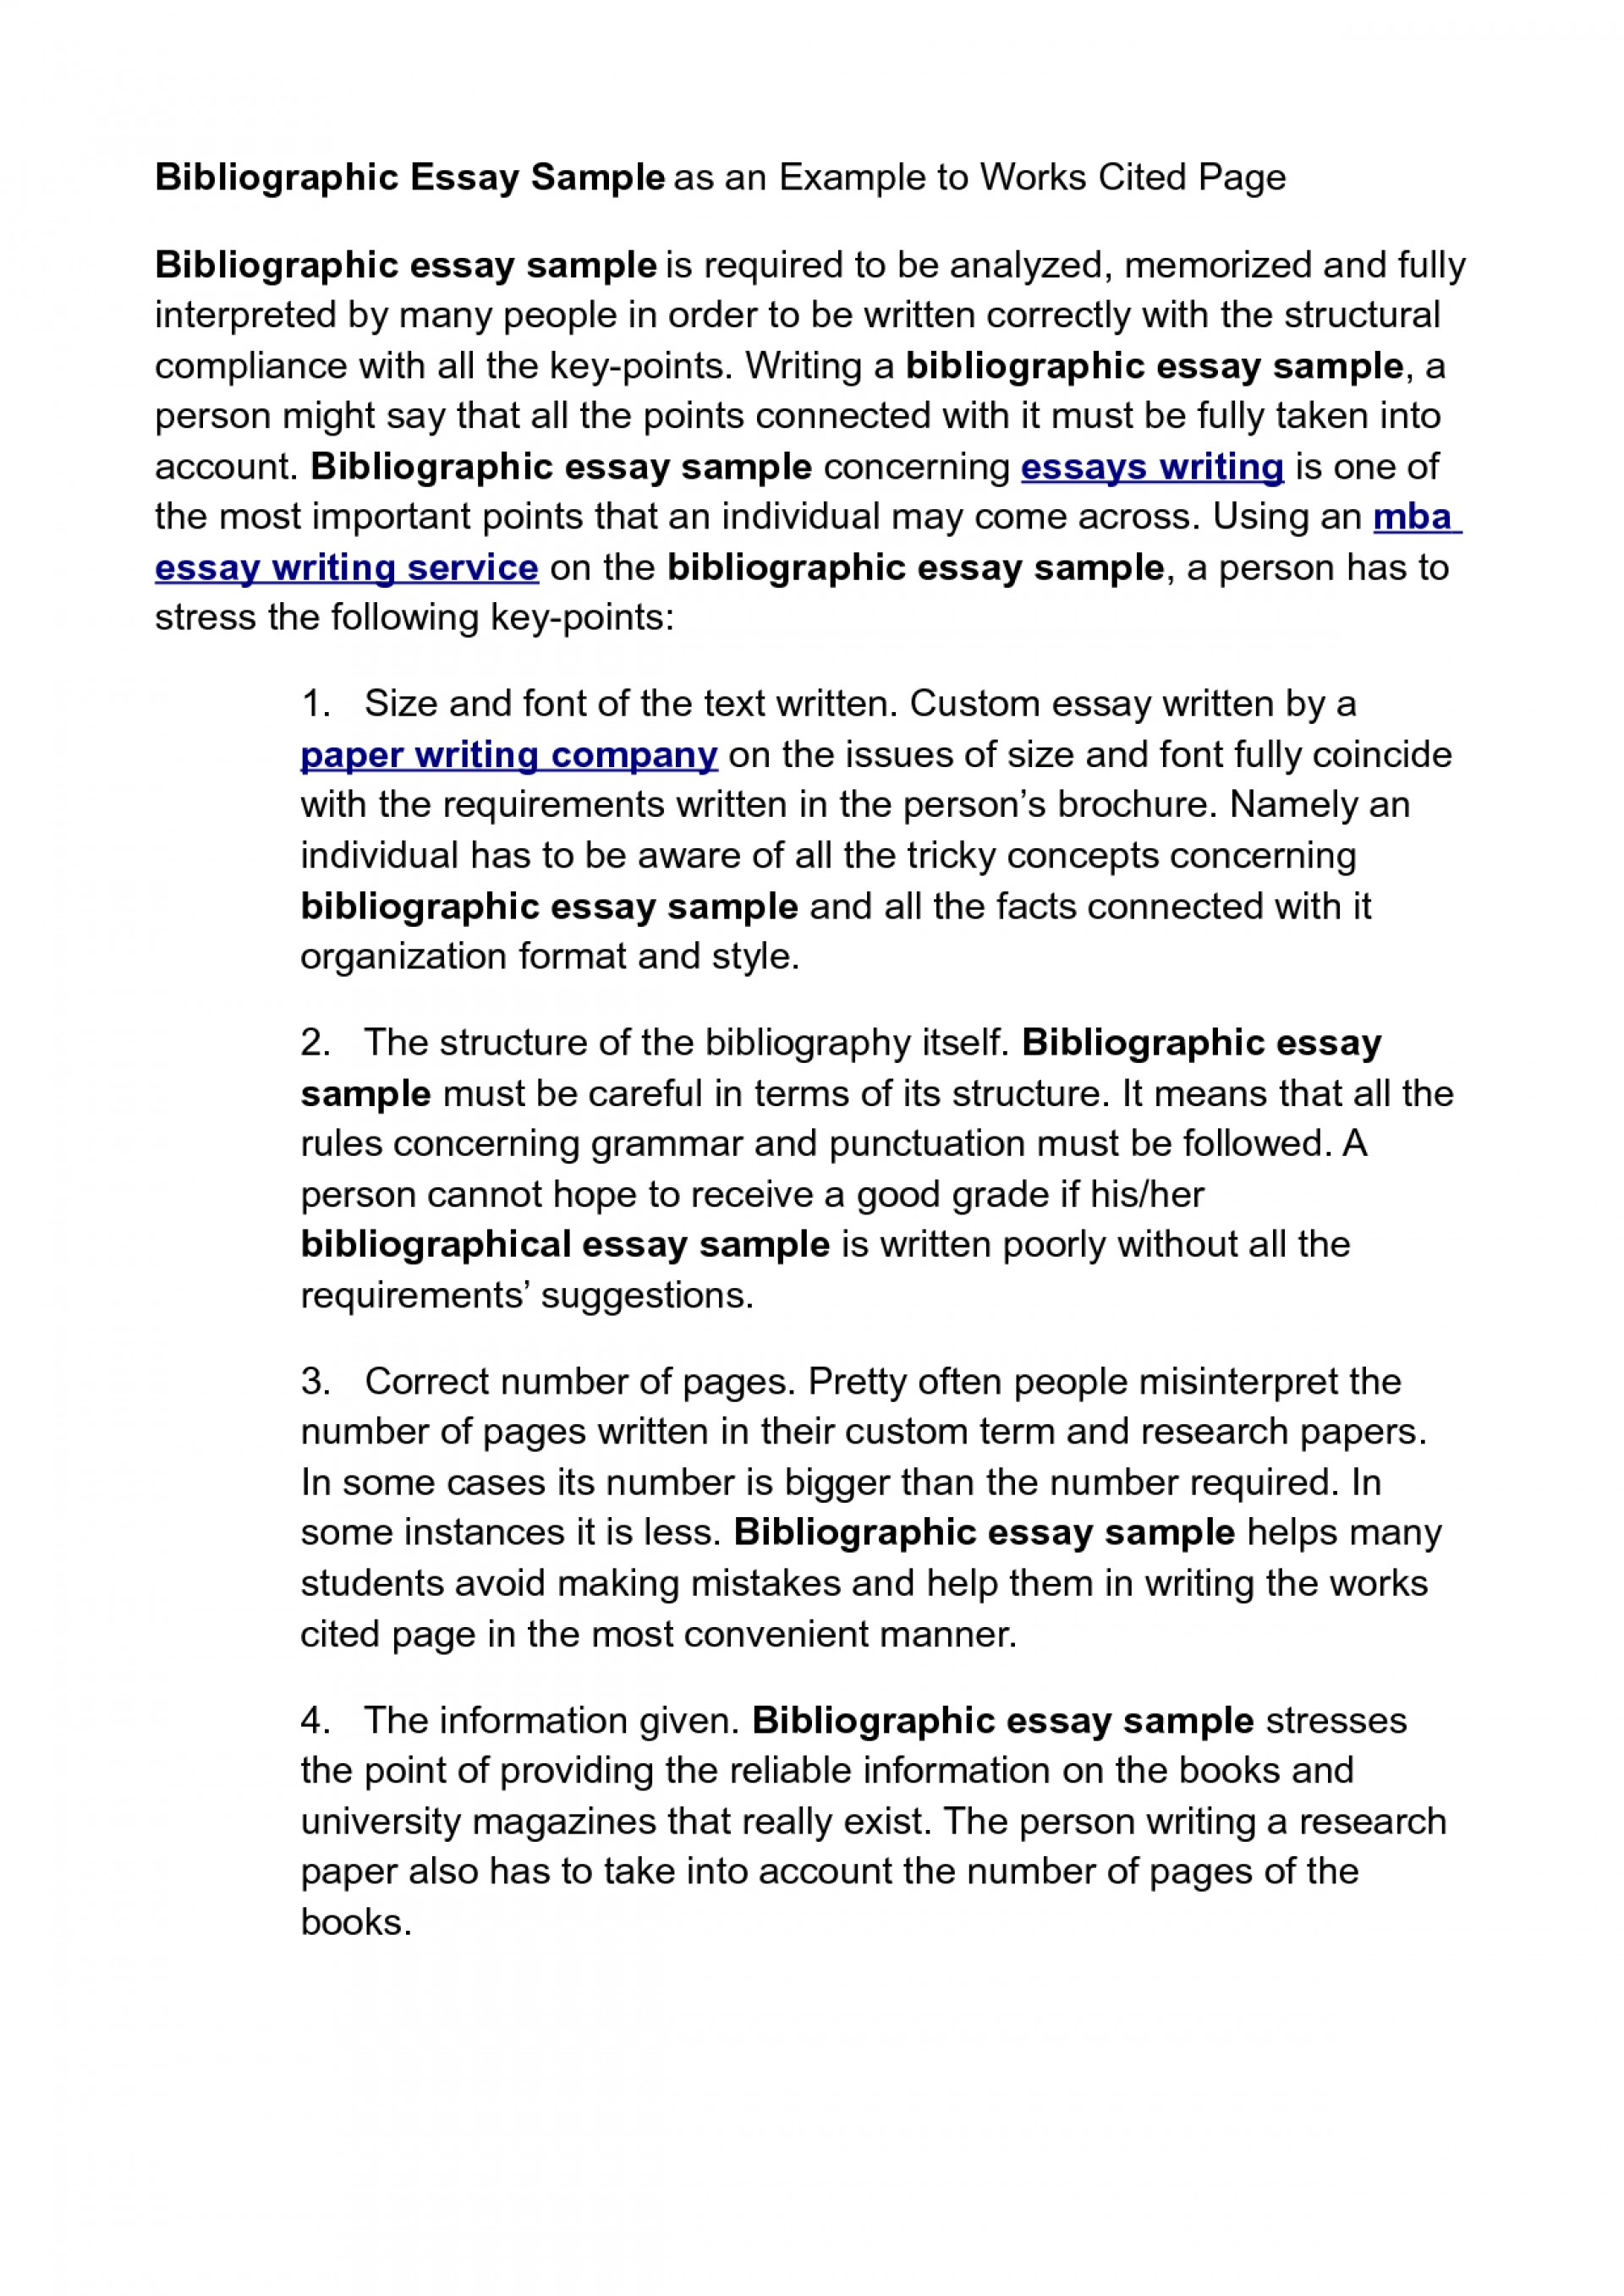 018 How To Cite An Essay Example Sample Persuasive With Works Cited Of Mla L Archaicawful In A Book 8th Edition Work Format Within Apa 1920